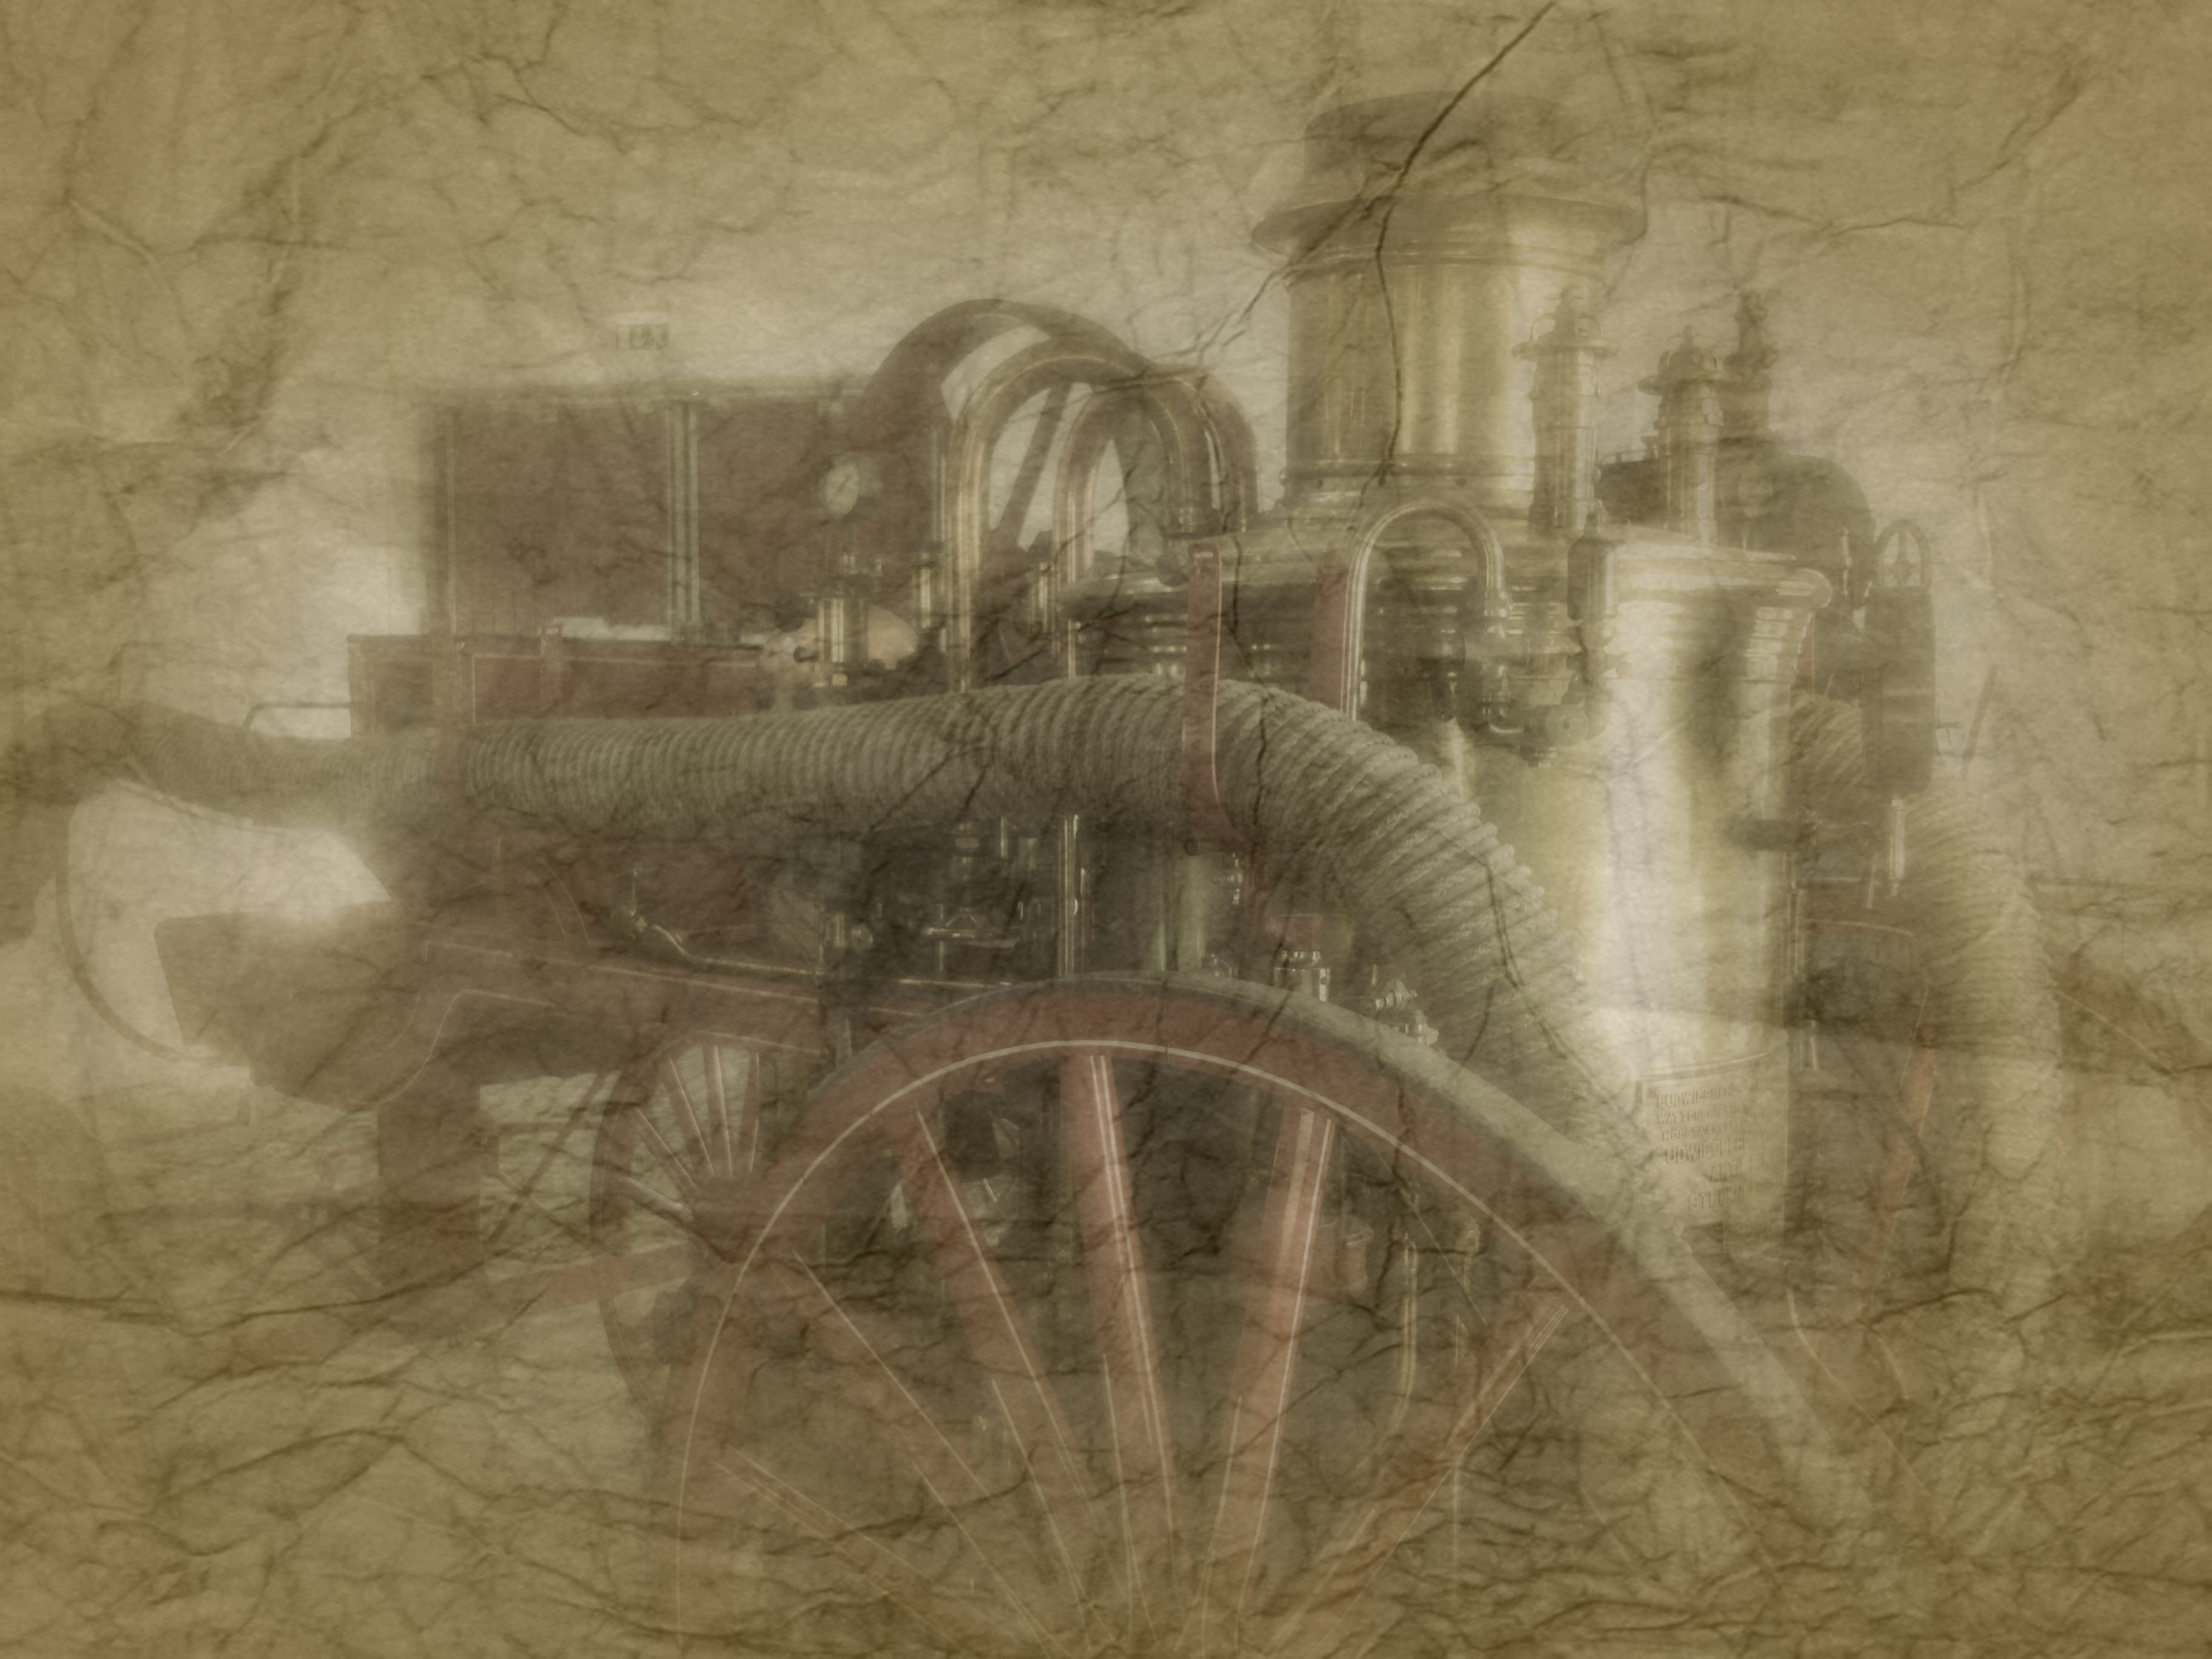 SilwerSteam steampunk steam engine 3